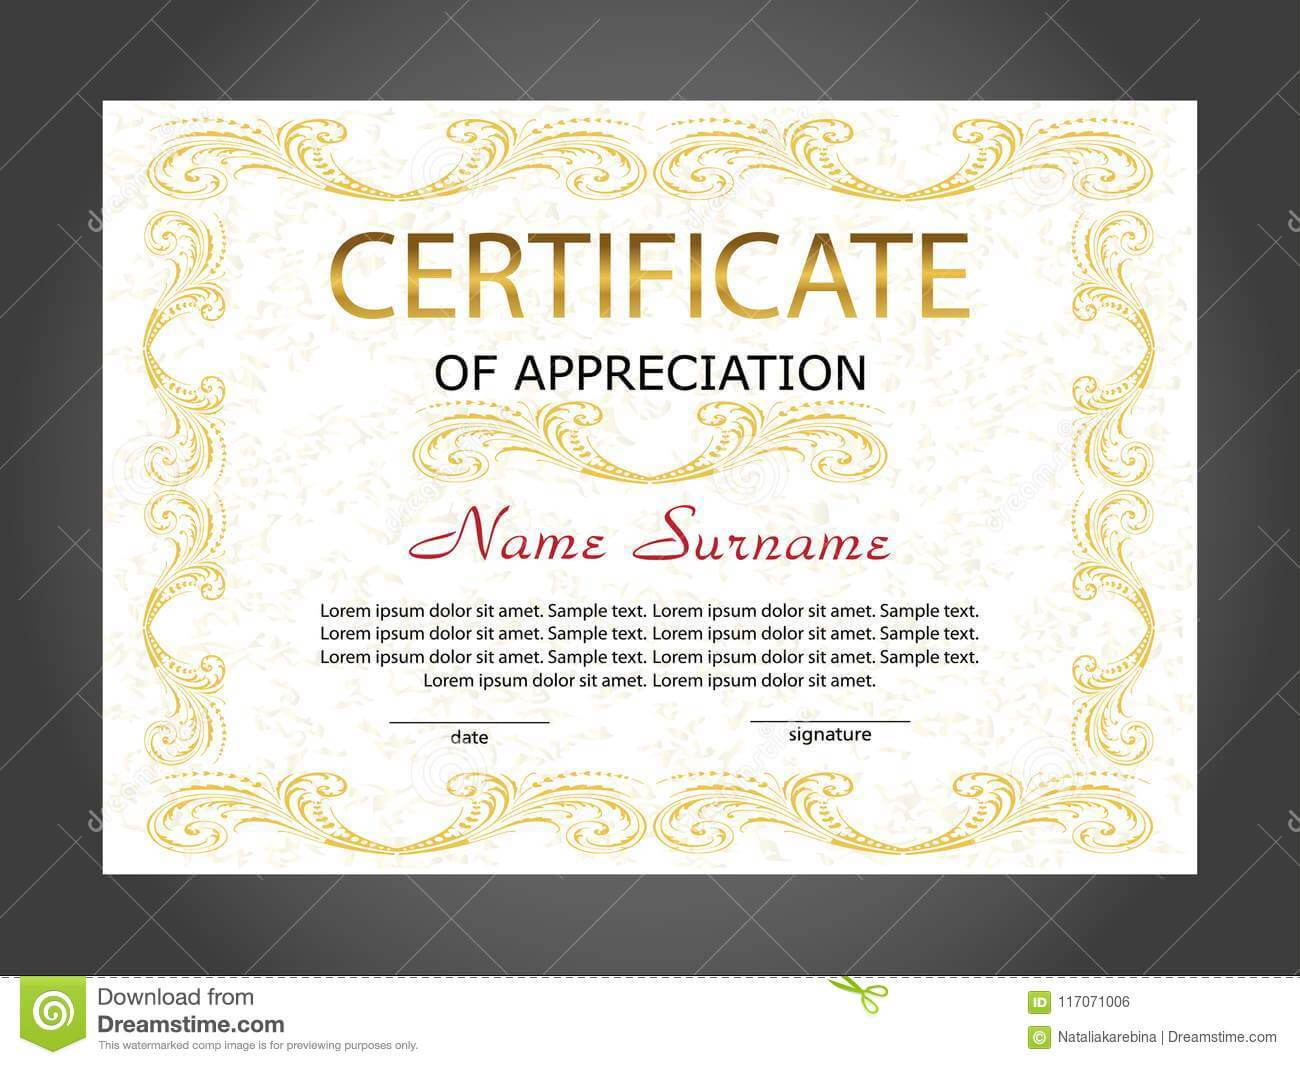 Certificate Of Appreciation, Diploma Template. Reward. Award For Winner Certificate Template